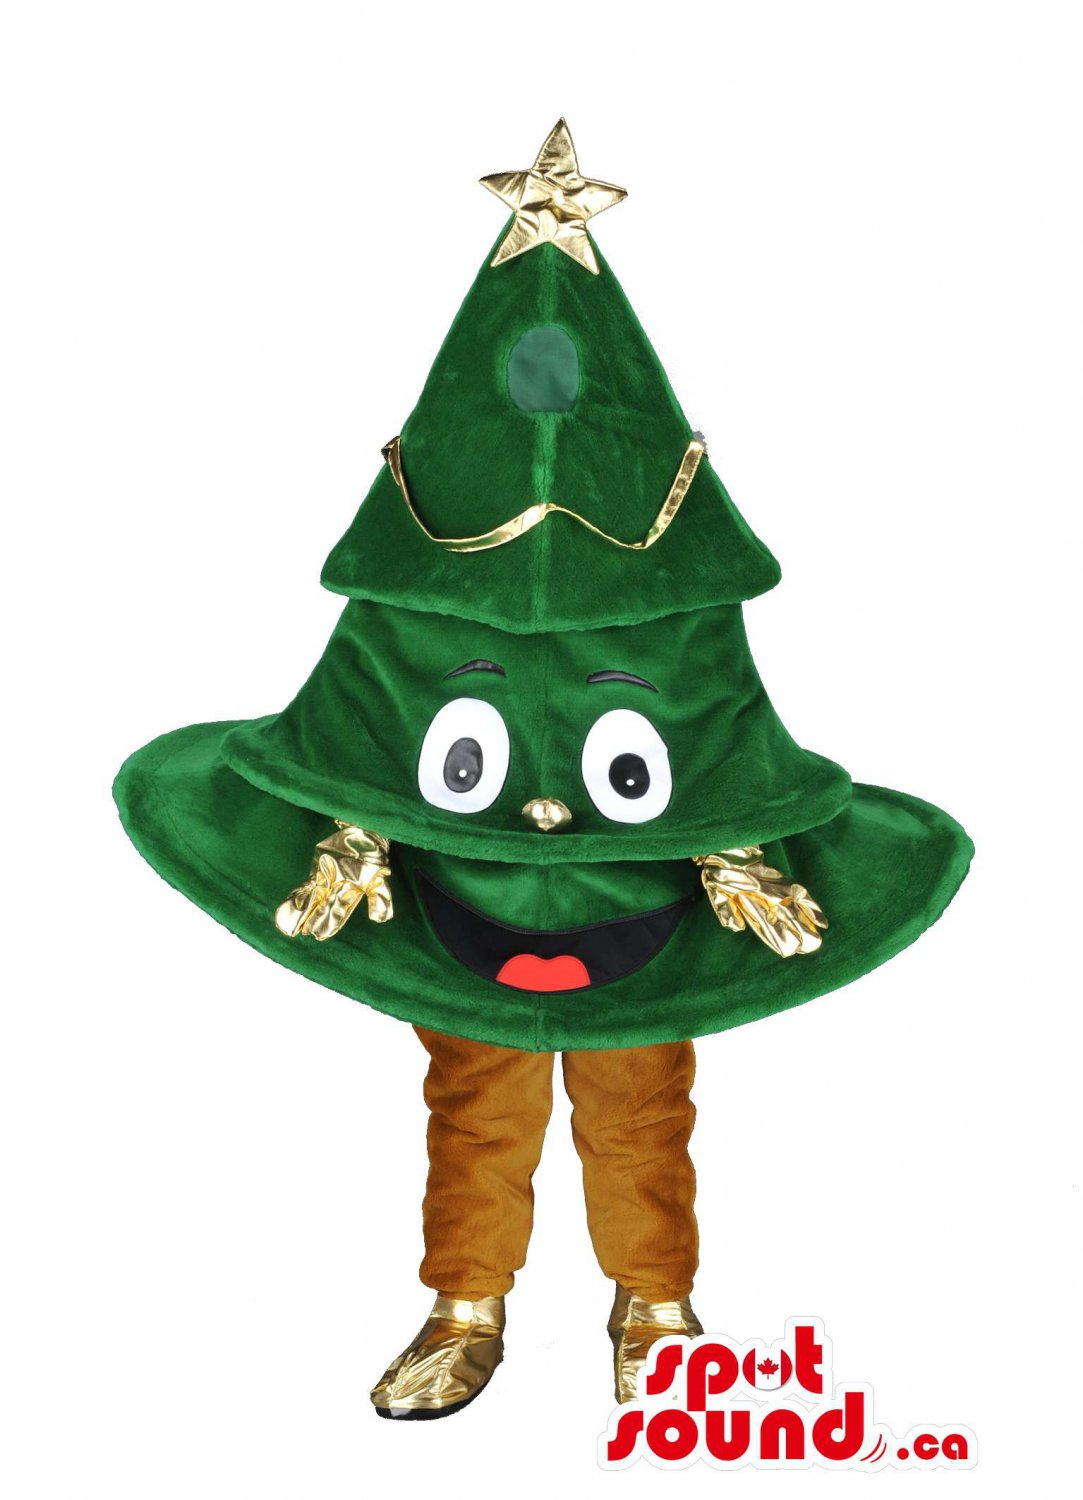 Shinny Golden Christmas Tree Mascot SpotSound Canada With Shoes And Gloves